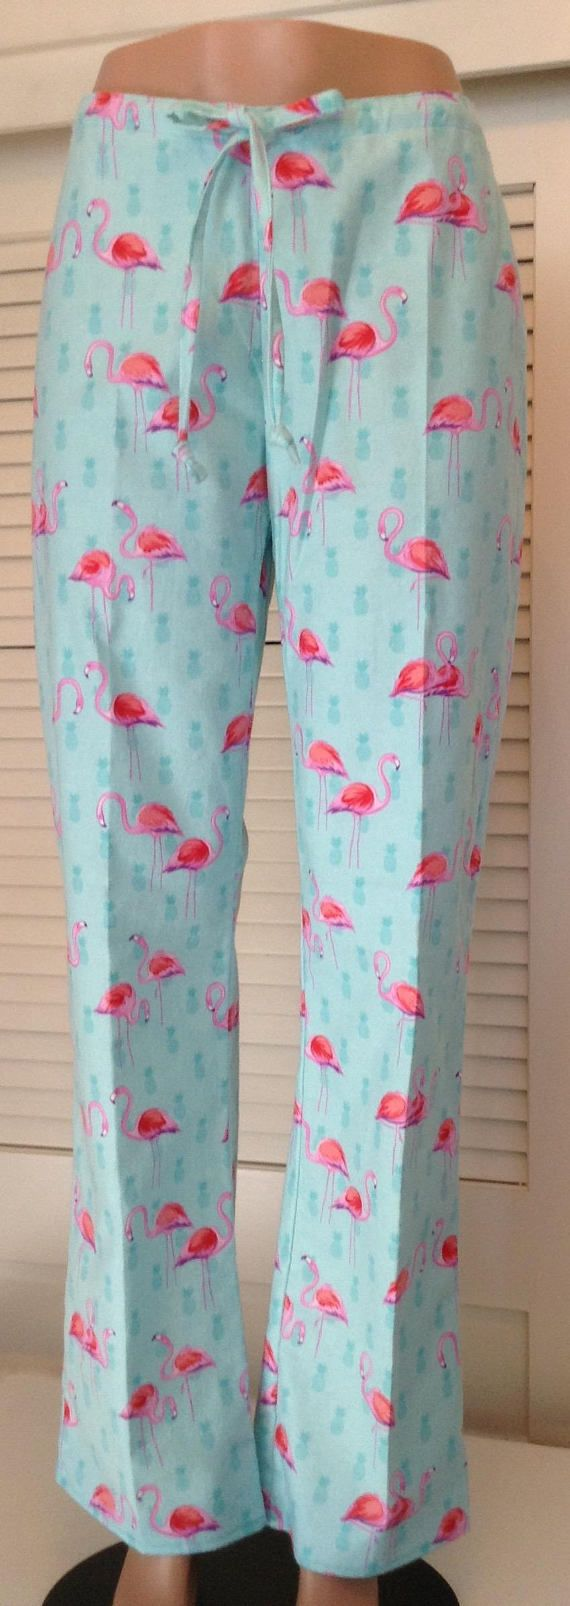 Pink flamingos on aqua blue background flannel pajama pant